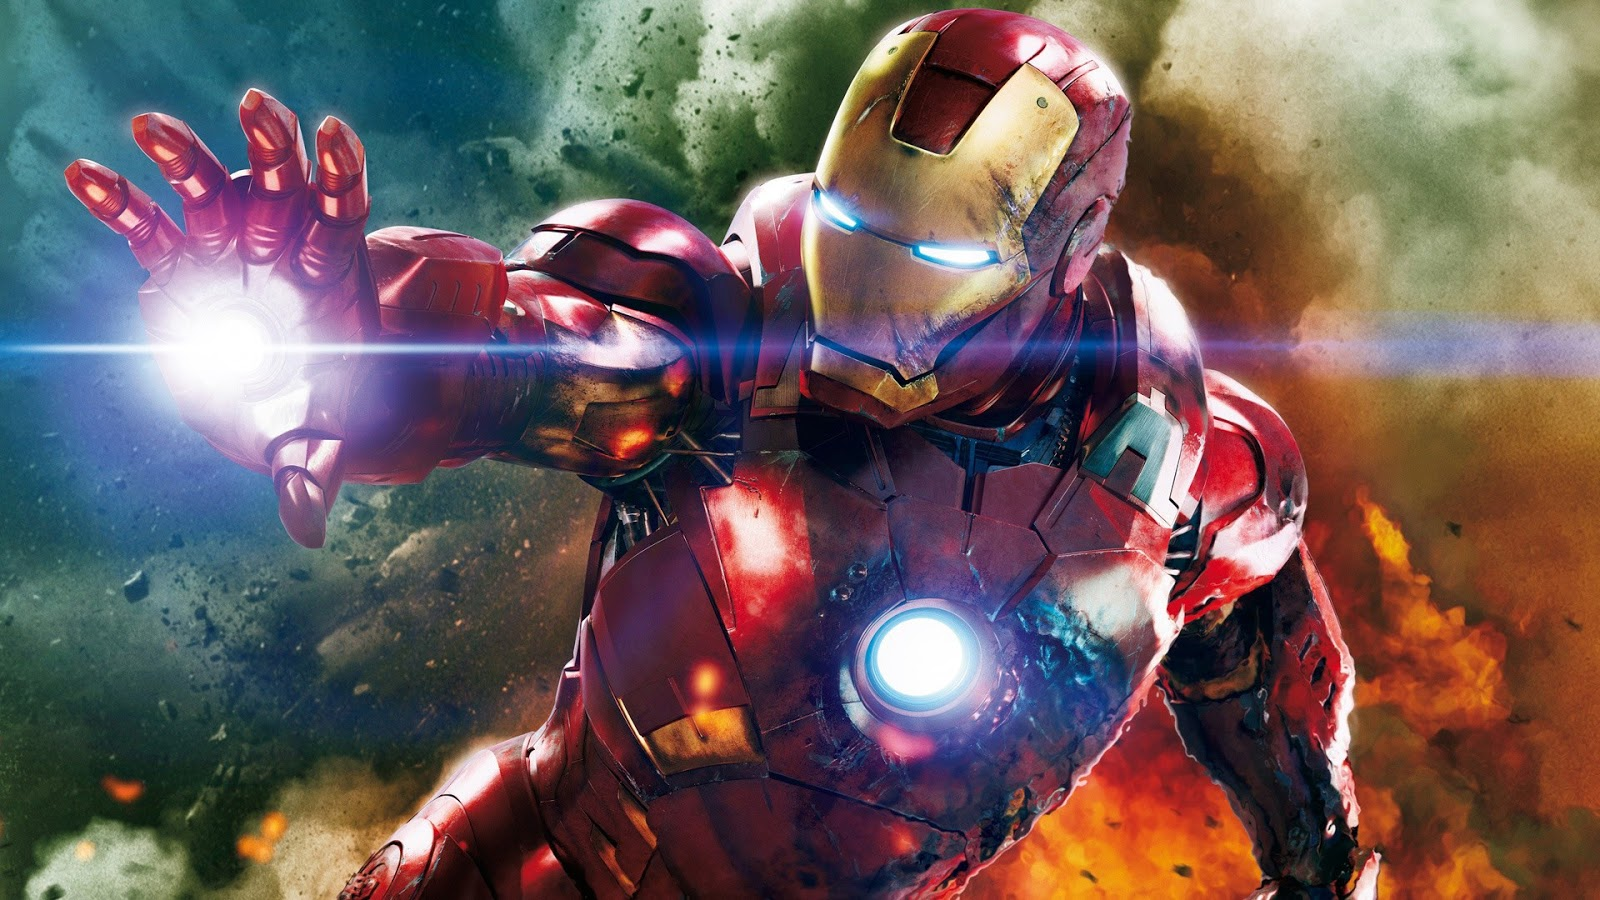 Iron Man 3 2013 HD wallpapers 1080p | HD Wallpapers (High Definition ...